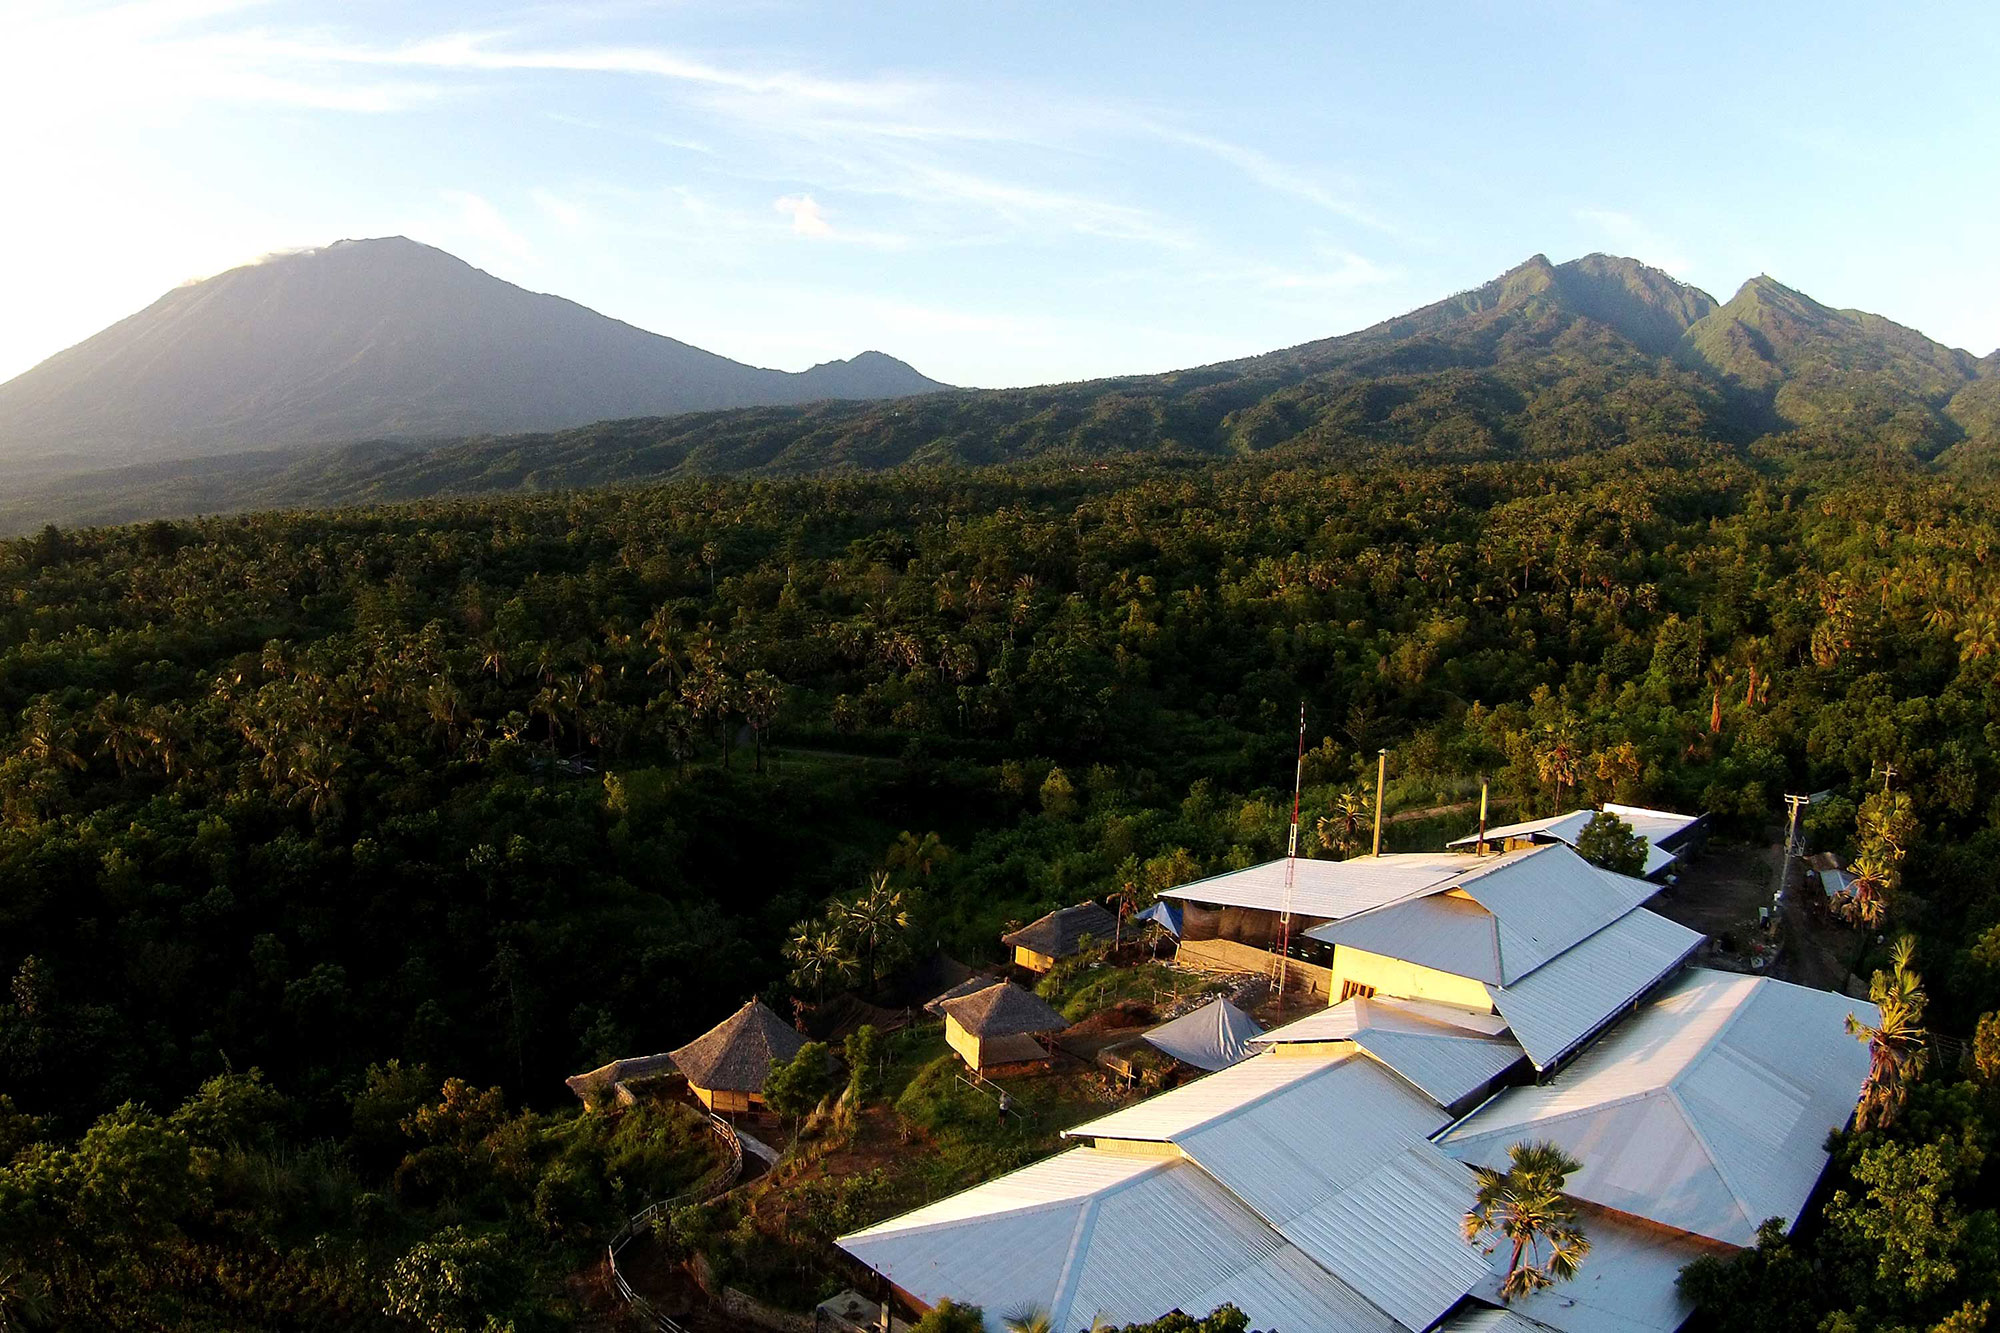 The factory, in eastern Bali, employs residents from a collection of villages called Desa Ban.